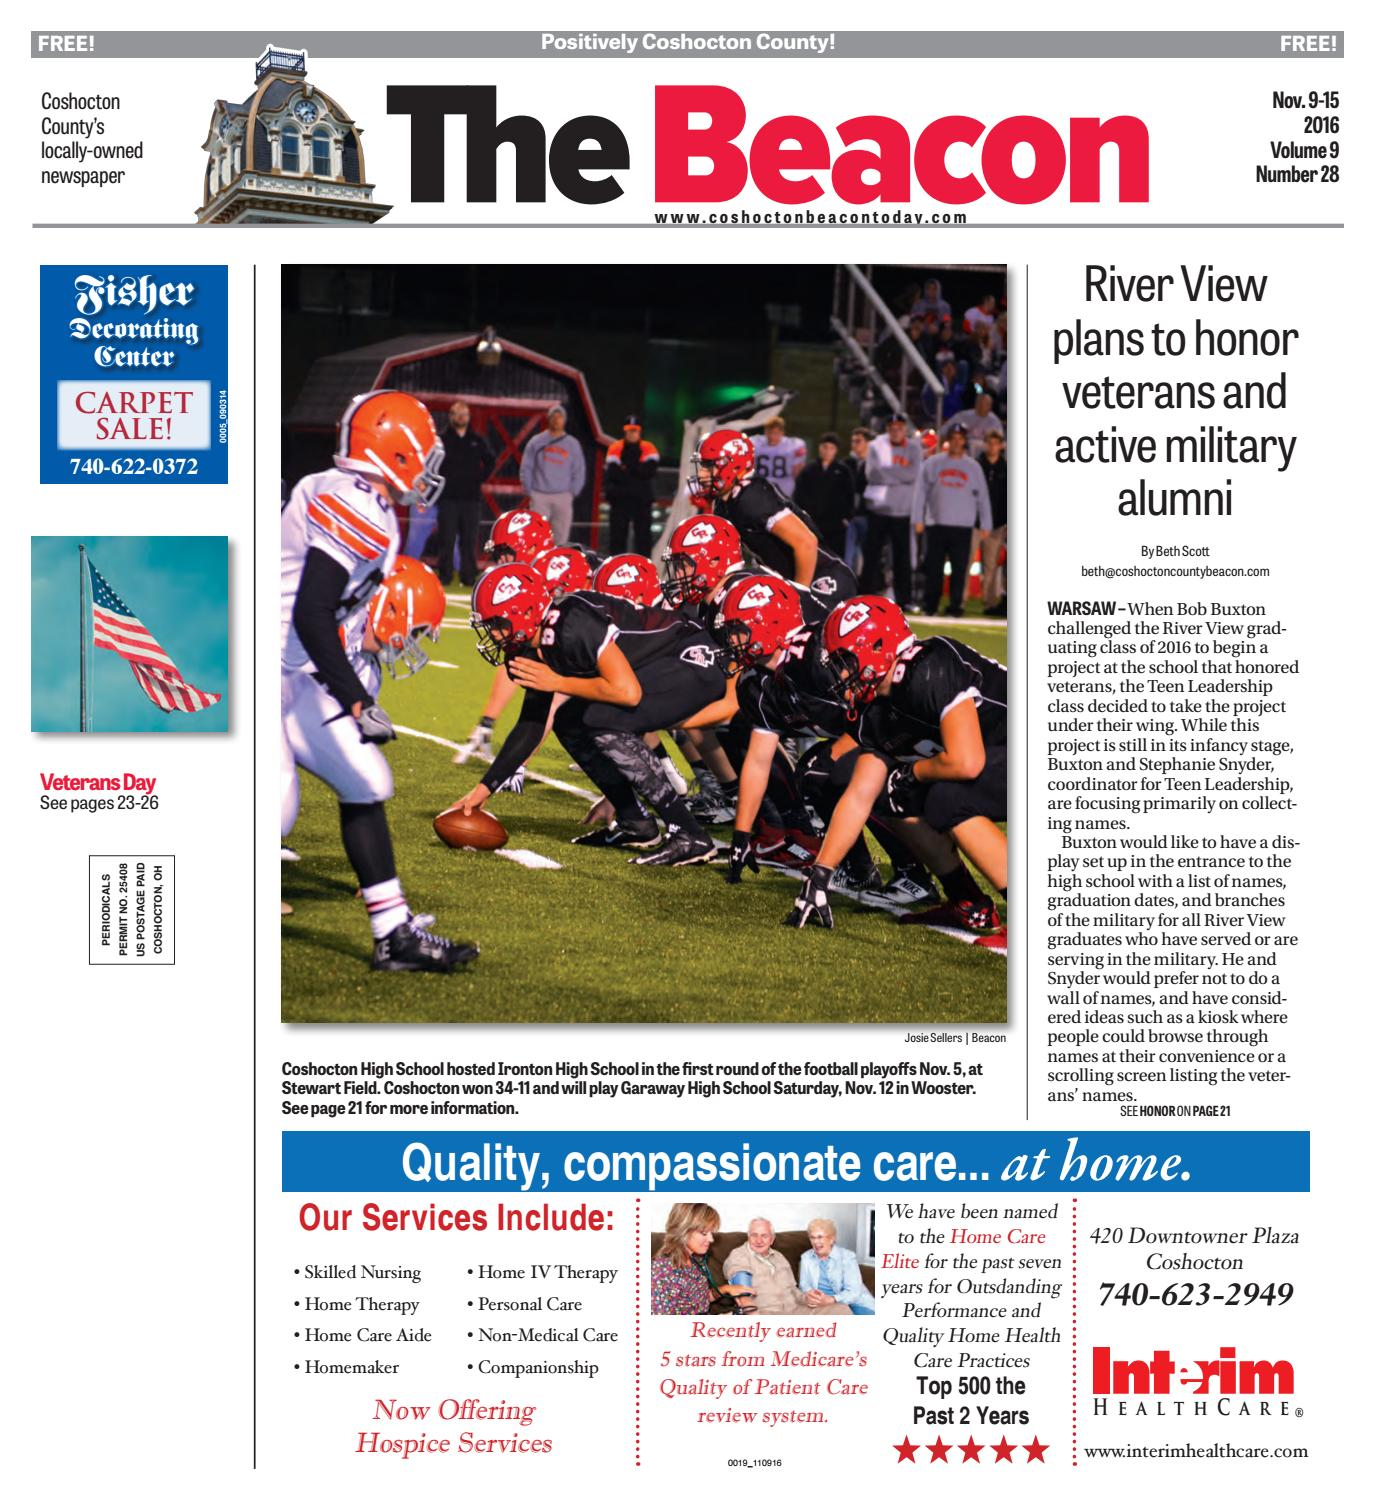 November 9 2016 Coshocton County Beacon By The